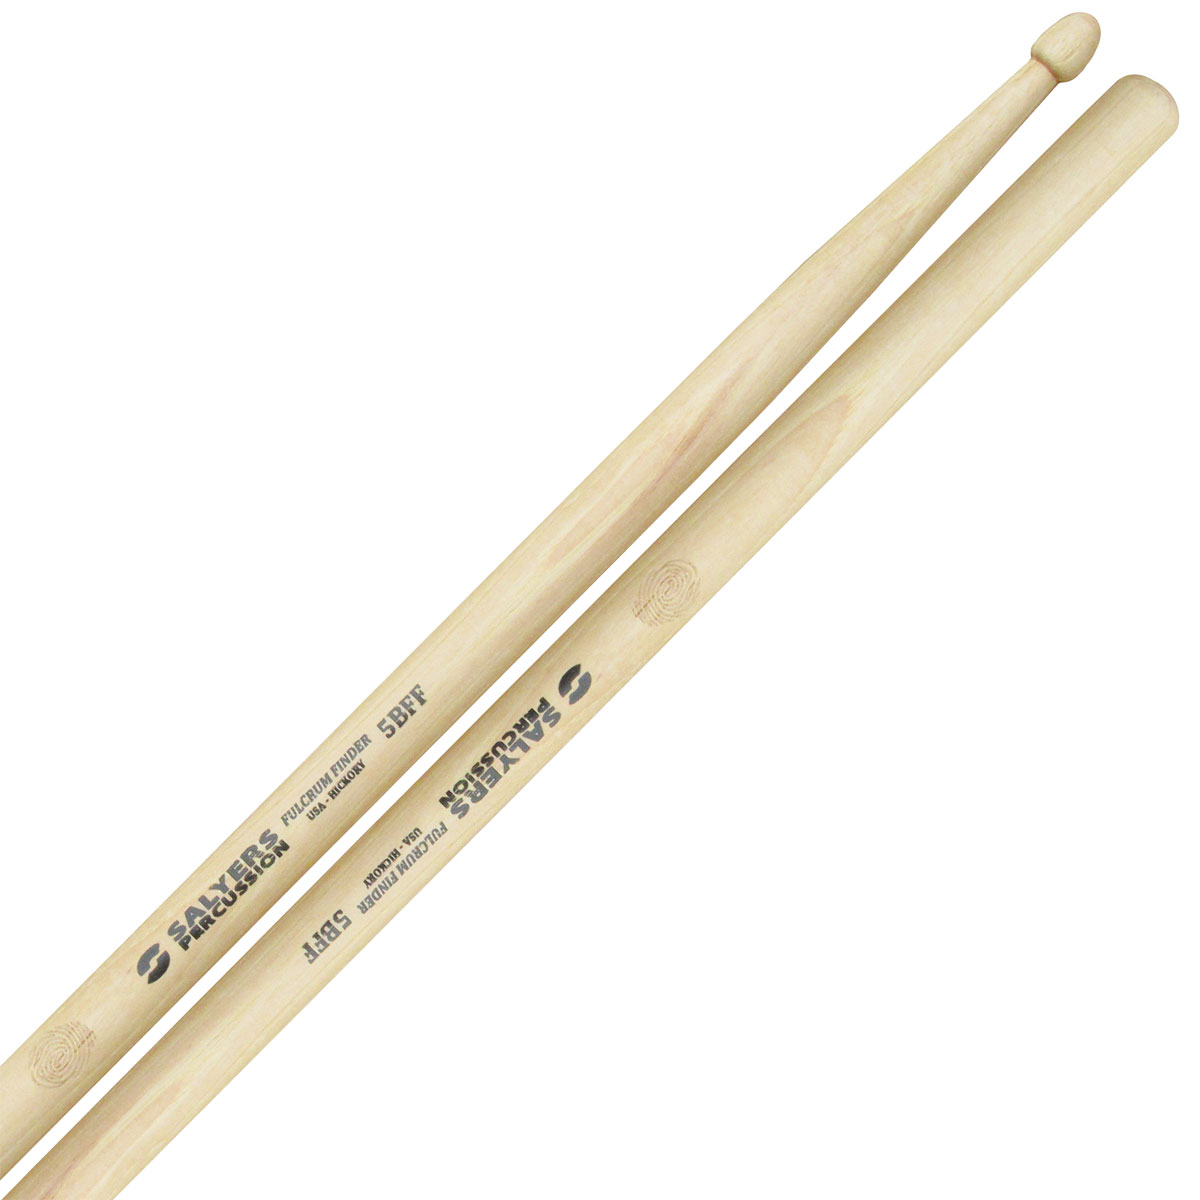 Salyers Percussion 5B Fulcrum Finder Educational Drum Set Sticks